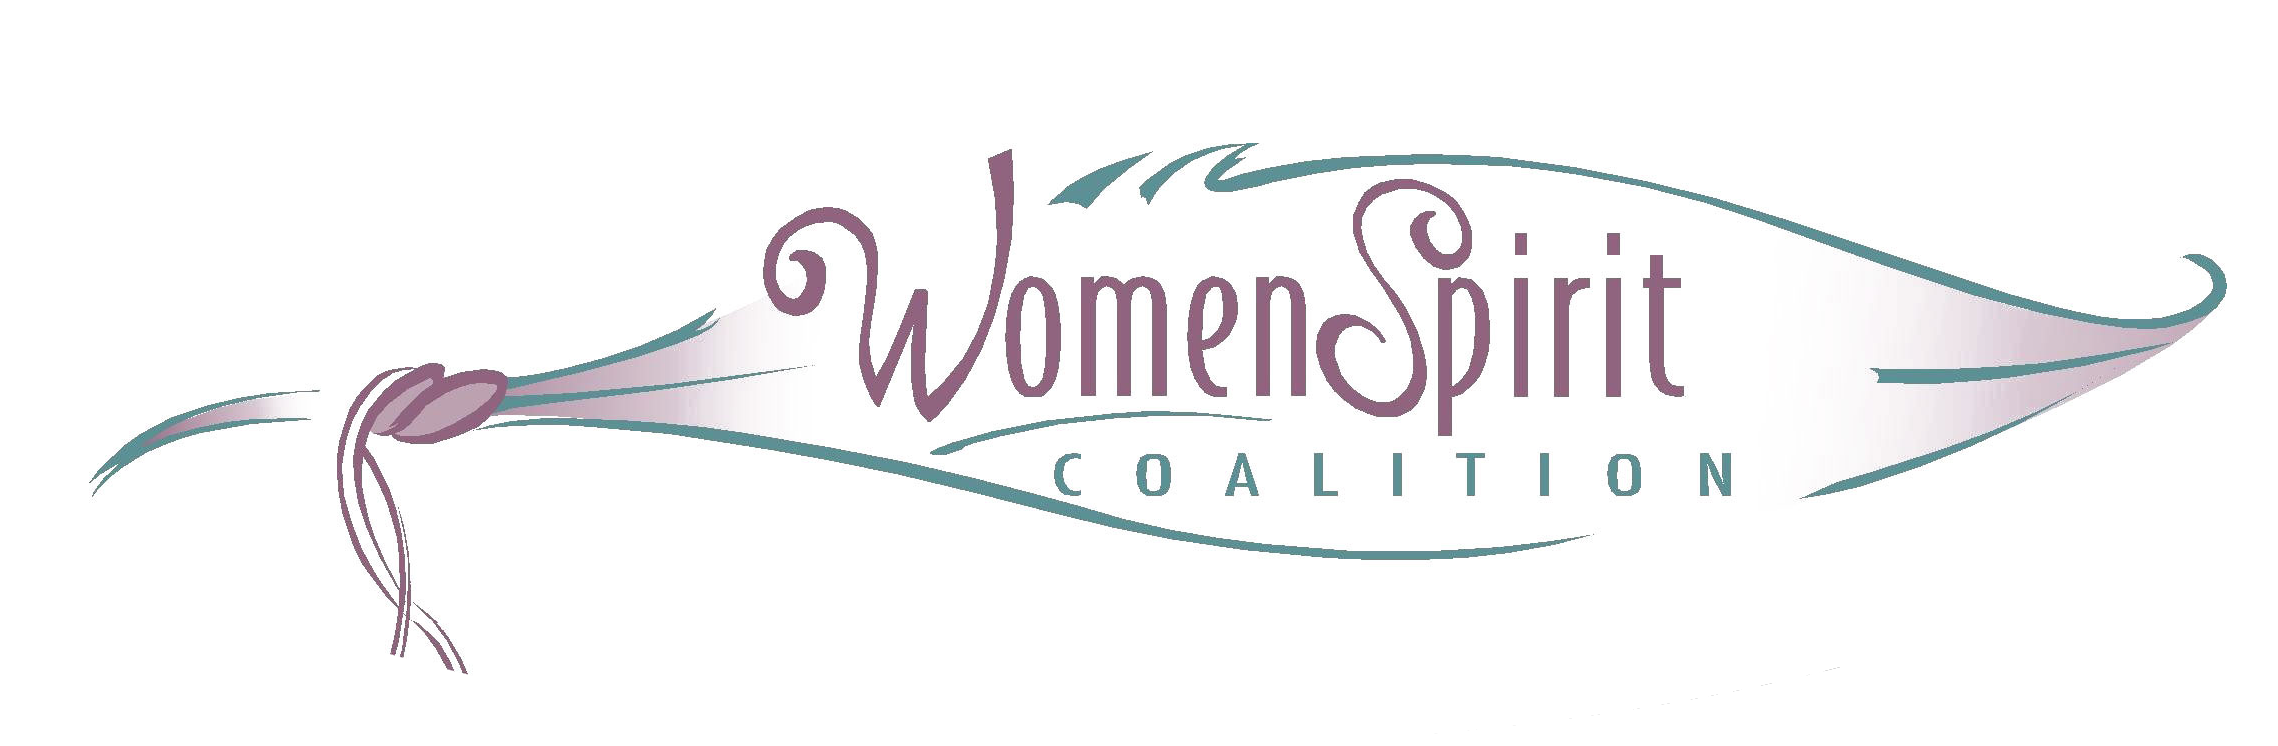 Woman Spirit Coalition